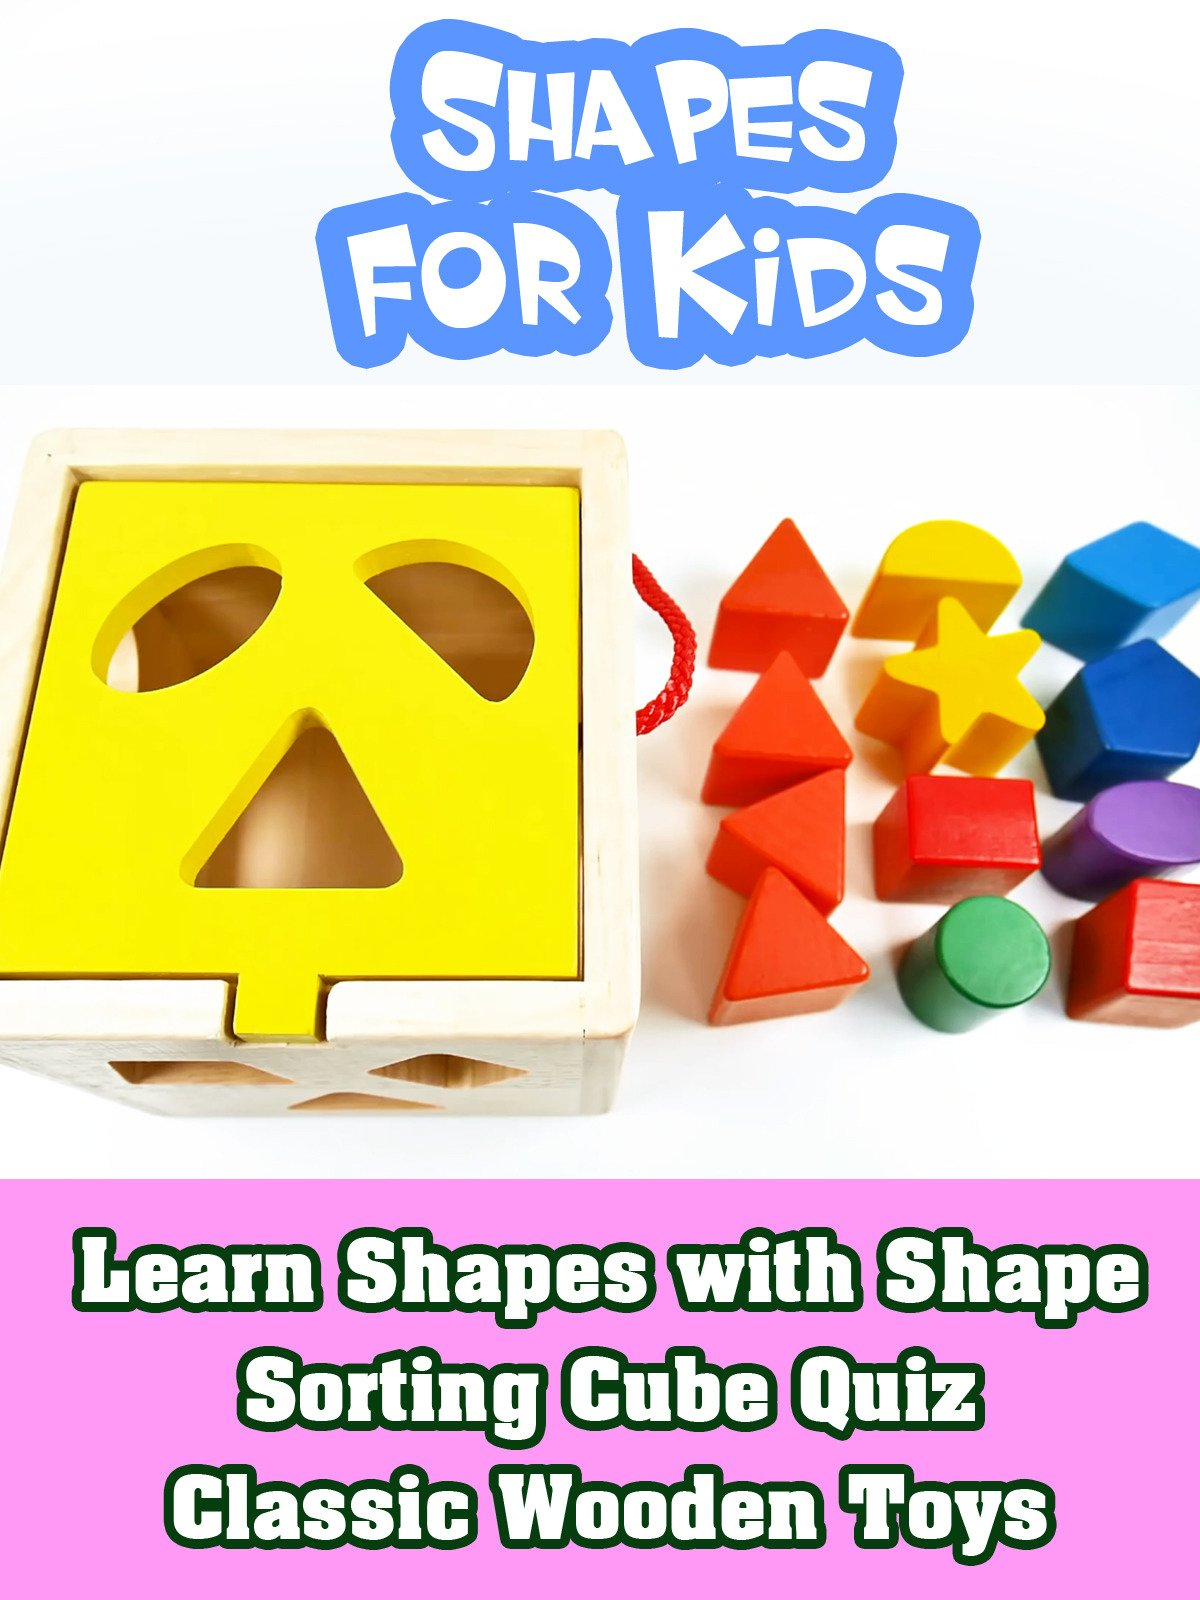 Learn Shapes with Shape Sorting Cube Quiz Classic Wooden Toys